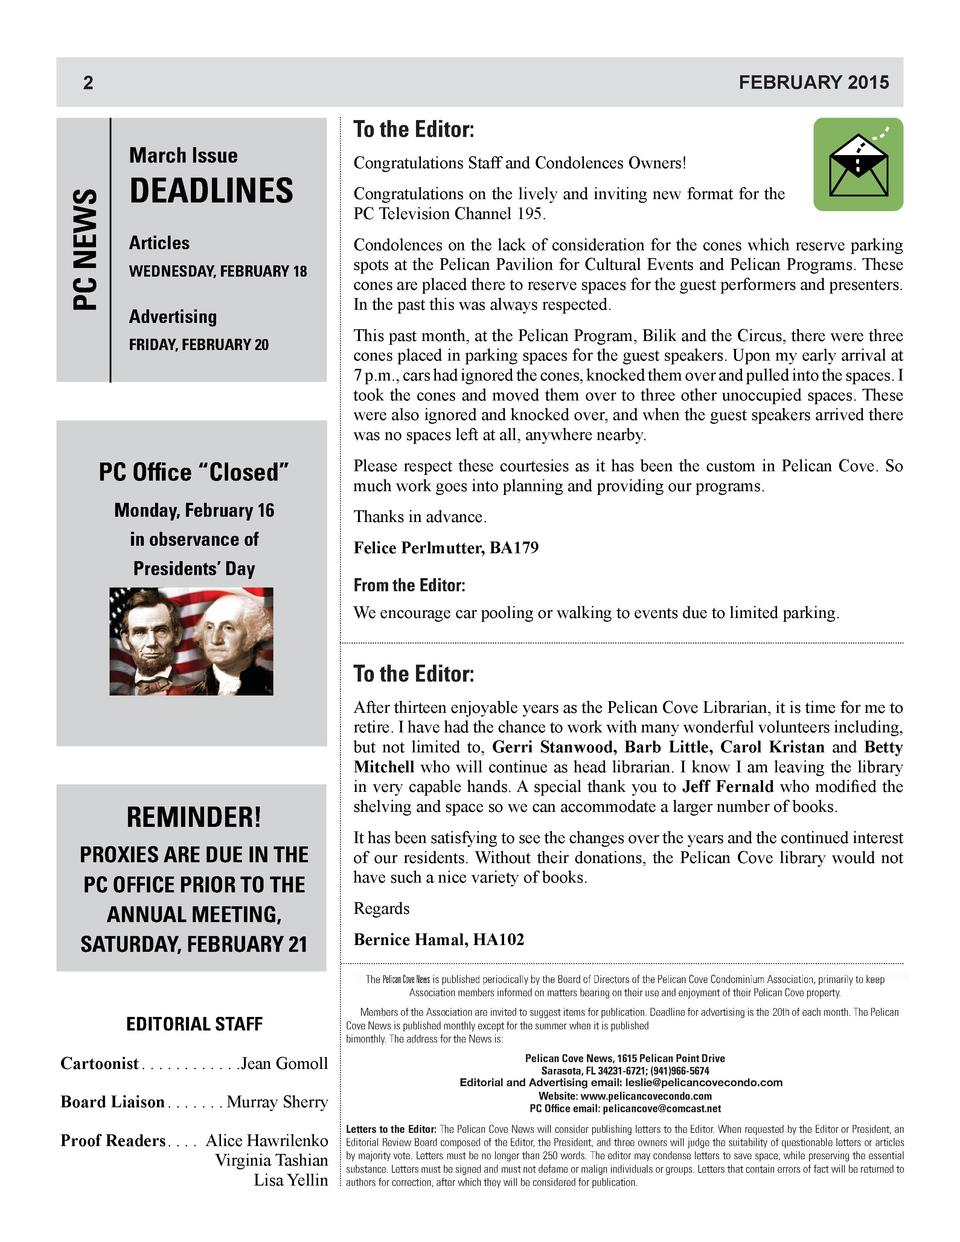 2 2 2  2  PC NEWS  March Issue  DEADLINES Articles WEDNESDAY, FEBRUARY 18  Advertising FRIDAY, FEBRUARY 20  PC Office    C...